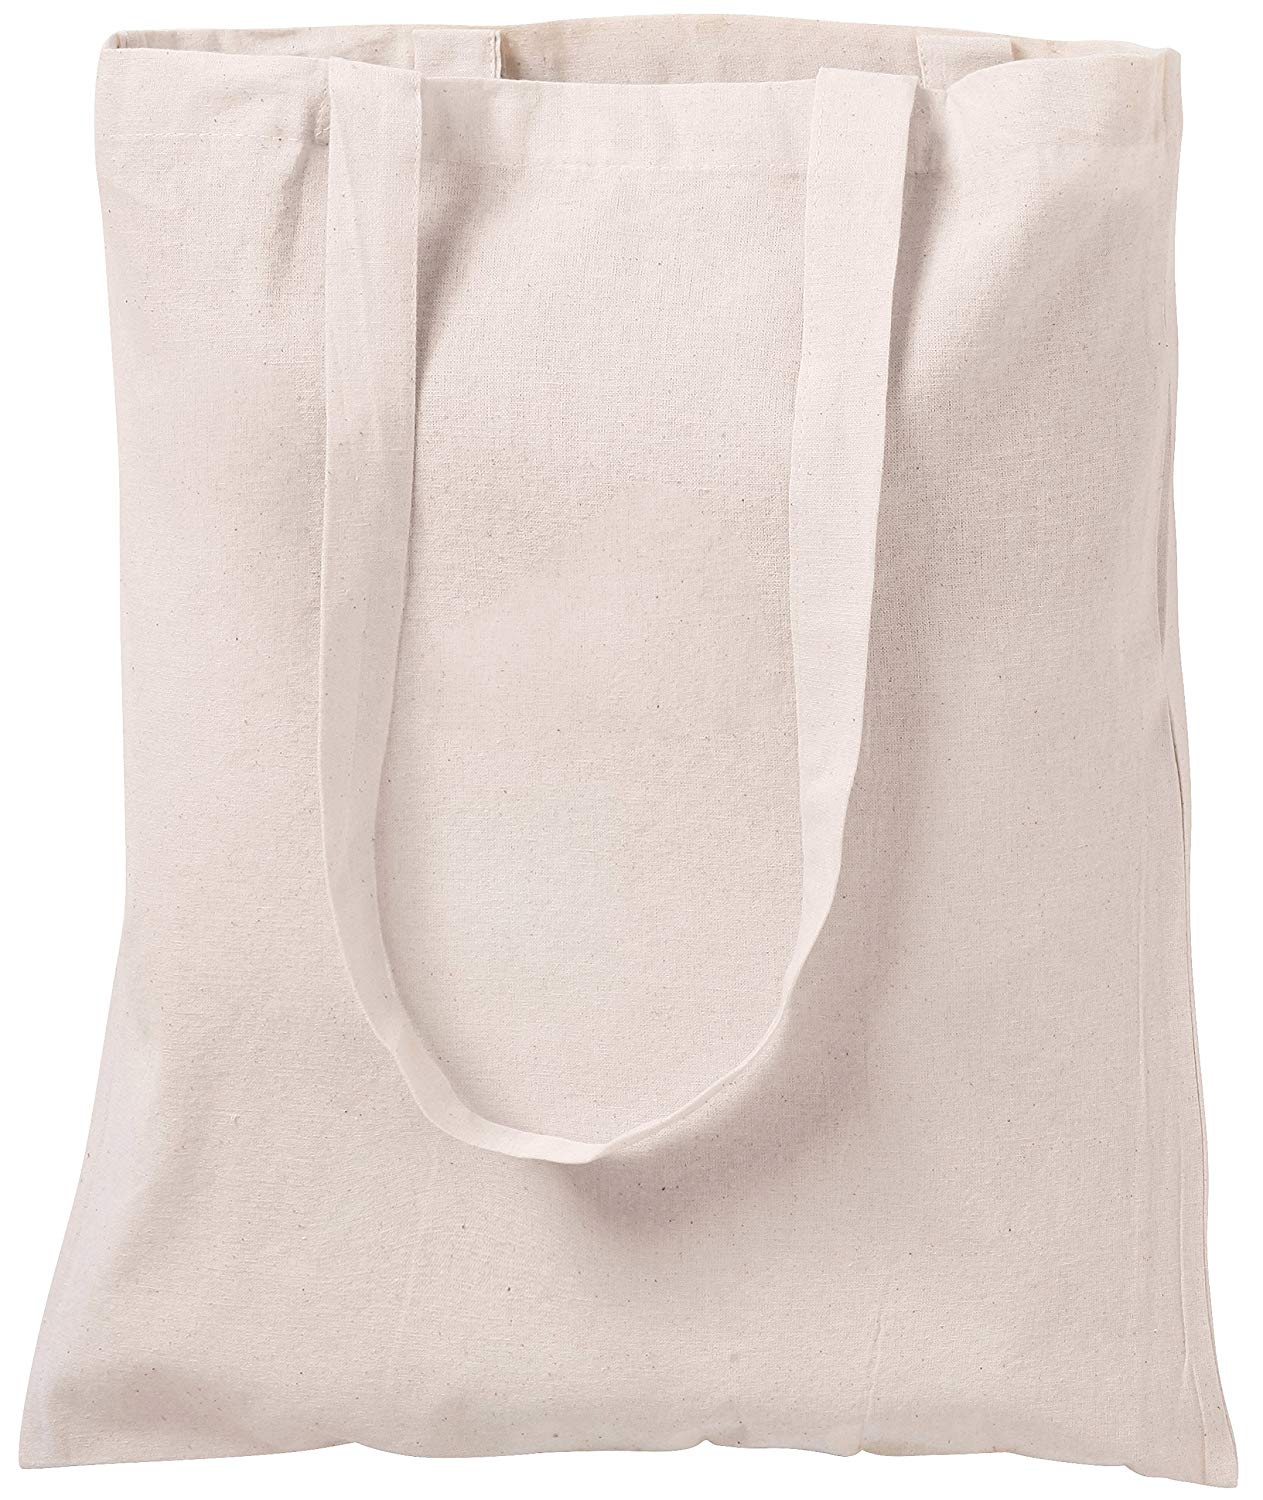 NATURAL COTTON TOTE BAGS SHOPPERS